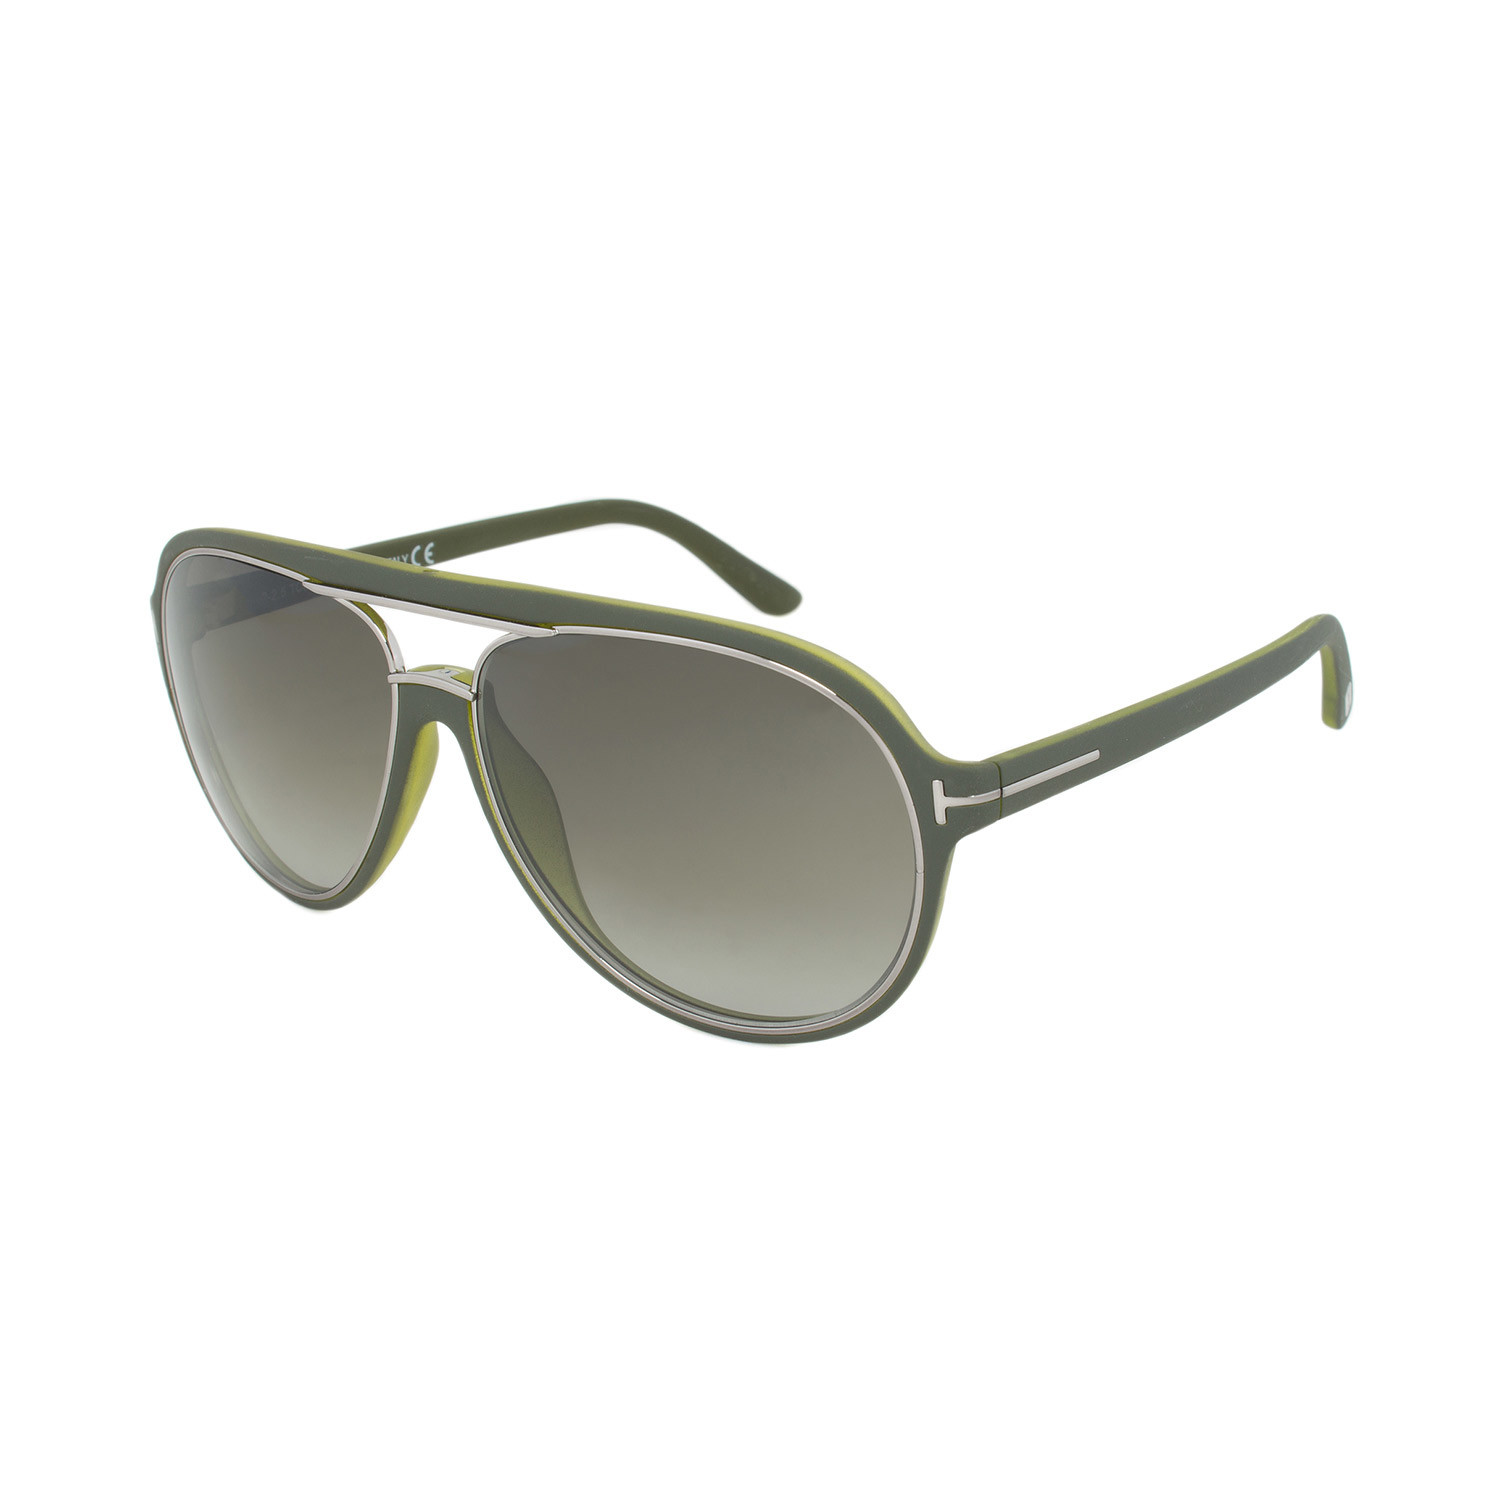 3730660ef3479 Tom Ford    Sergio Sunglasses    FT0379 98B - Tom Ford - Touch of Modern